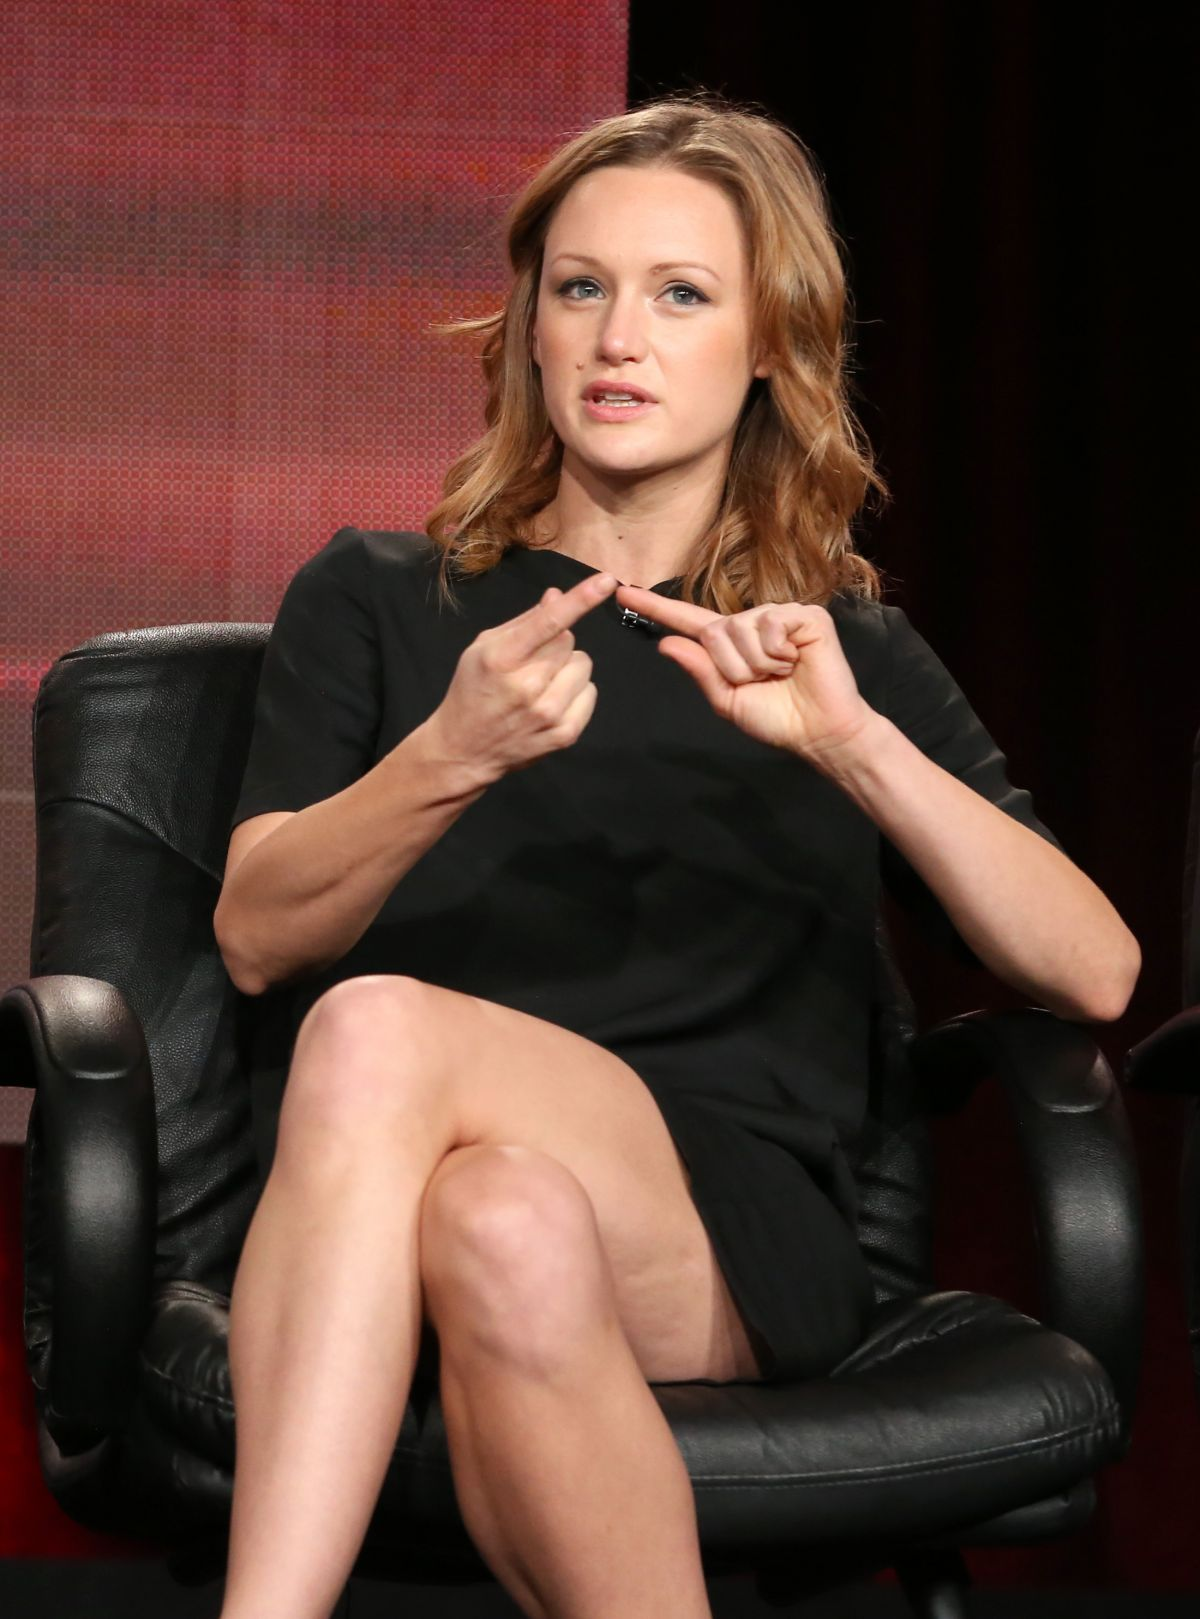 KERRY BISHE at Halt and Catch Fire Panel TCA Press Tour in Pasadena